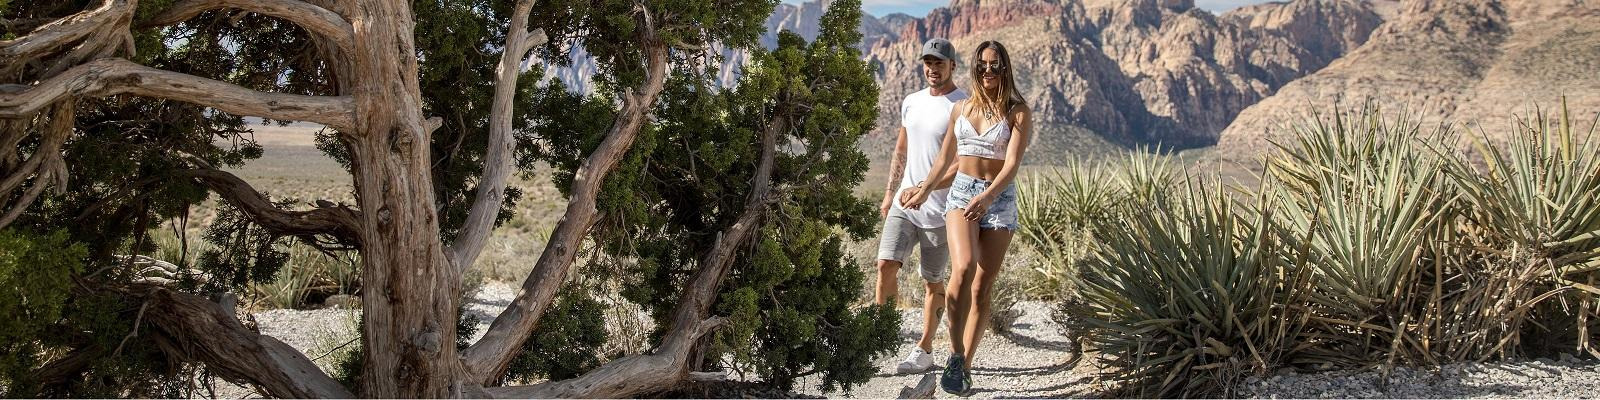 Couple from Las Vegas hiking in Red Rock Canyon